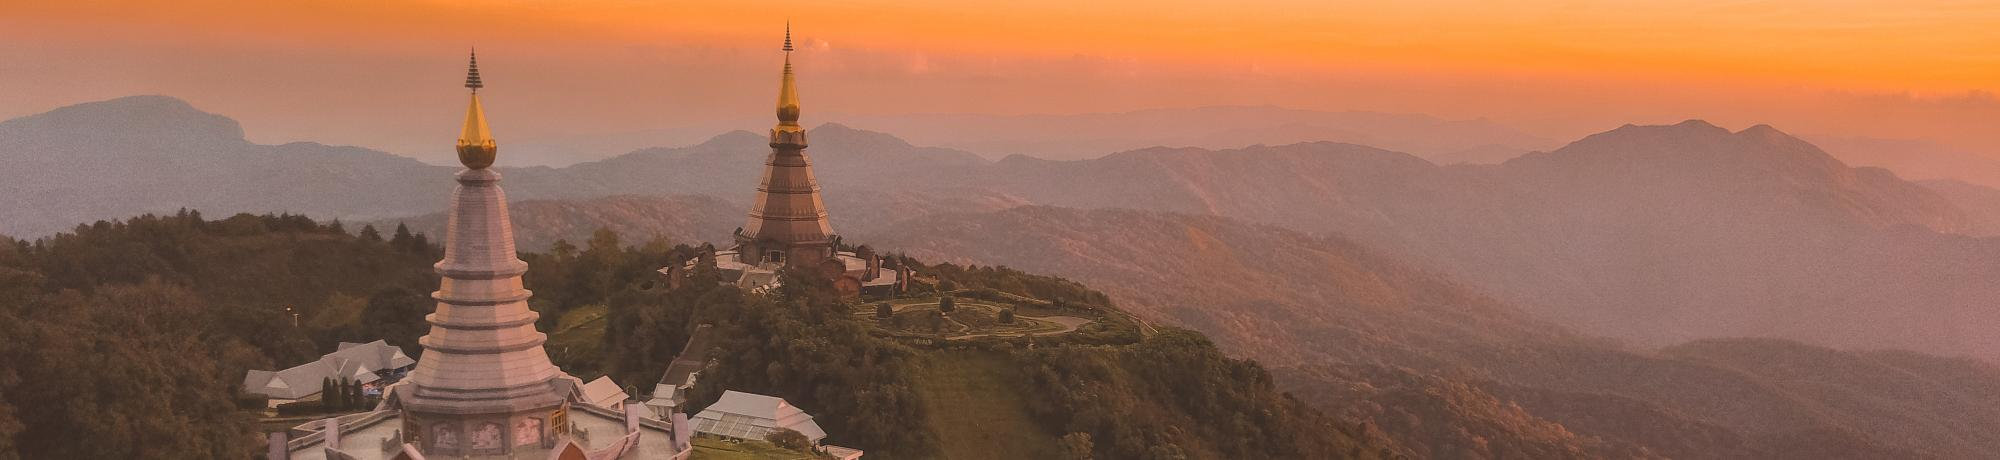 UC Davis Study Abroad, Summer Internship Abroad Thailand, Education Program, Header Image, Overview Page